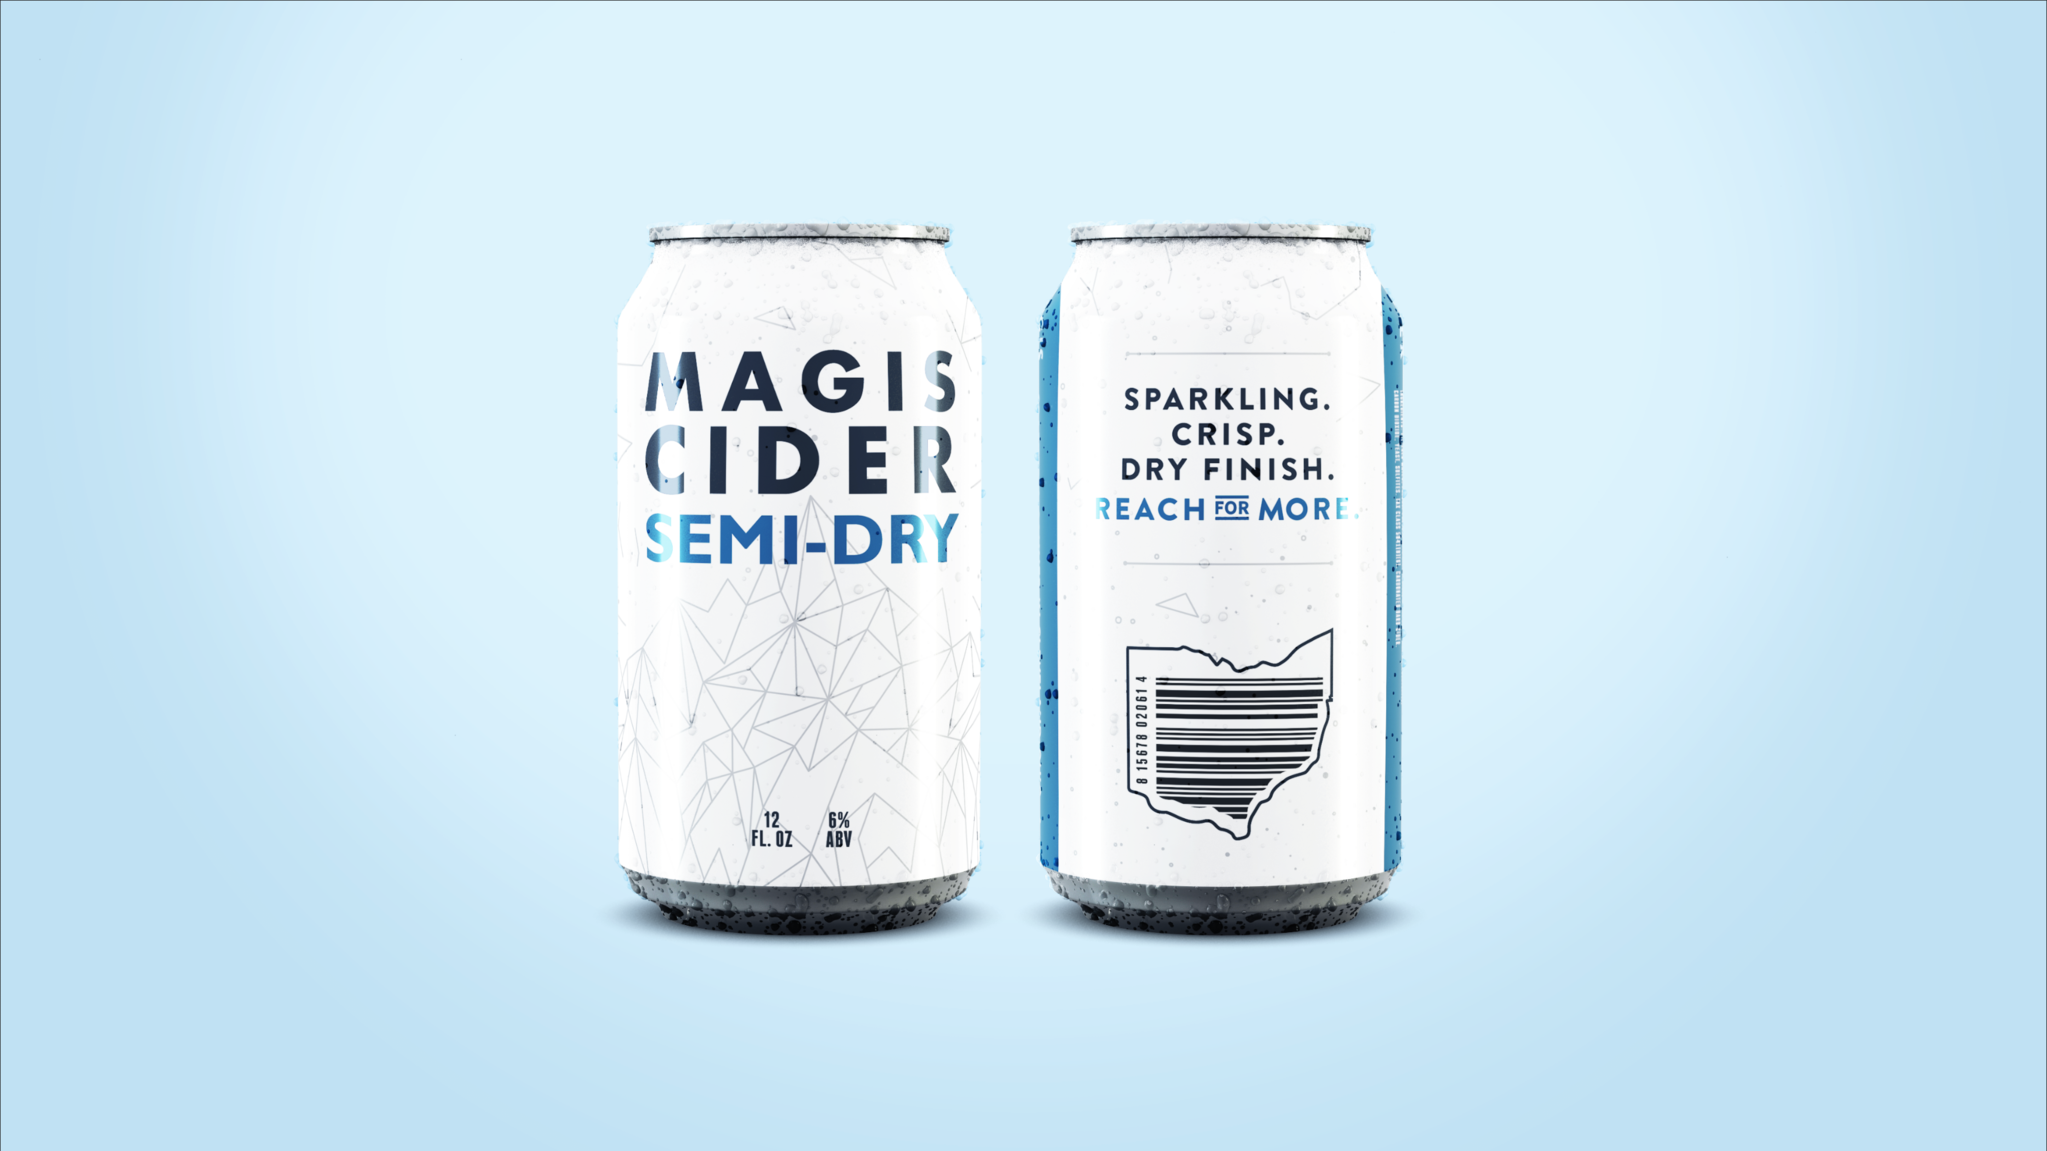 Magis Cider Semi-Dry 6-pack (cans)